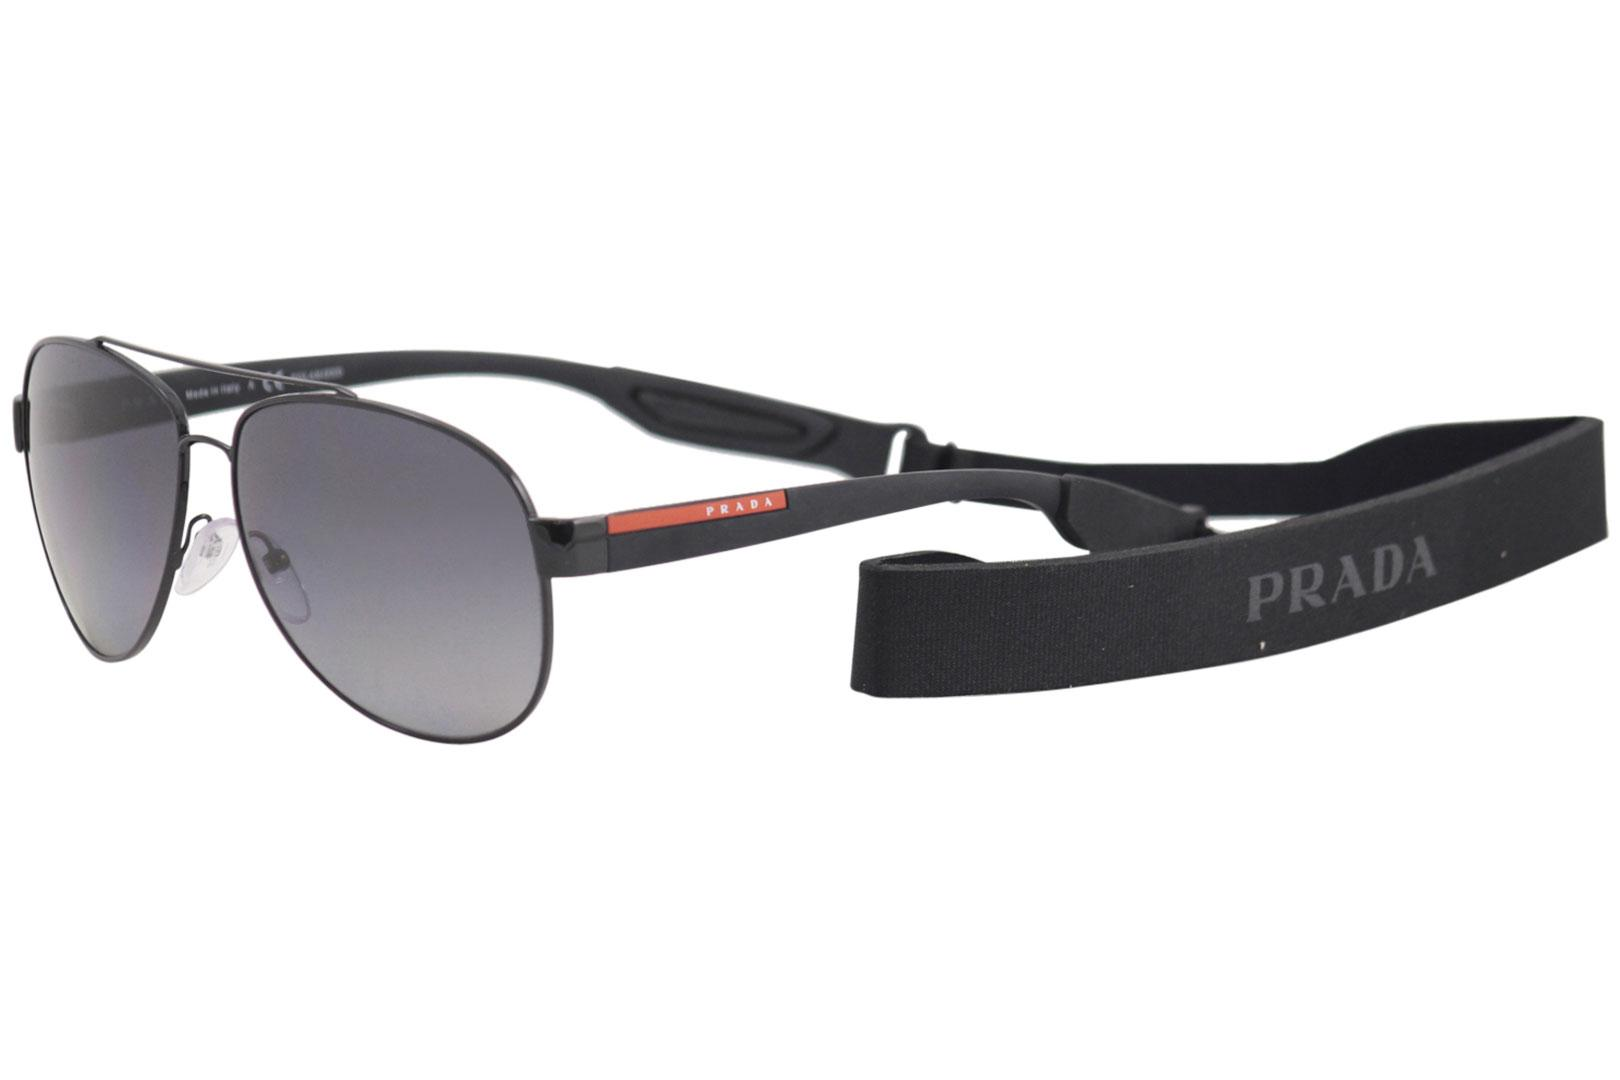 af5747cff9ca3 ... real polarized sunglasses by prada. touch to zoom 4fe9d 12950